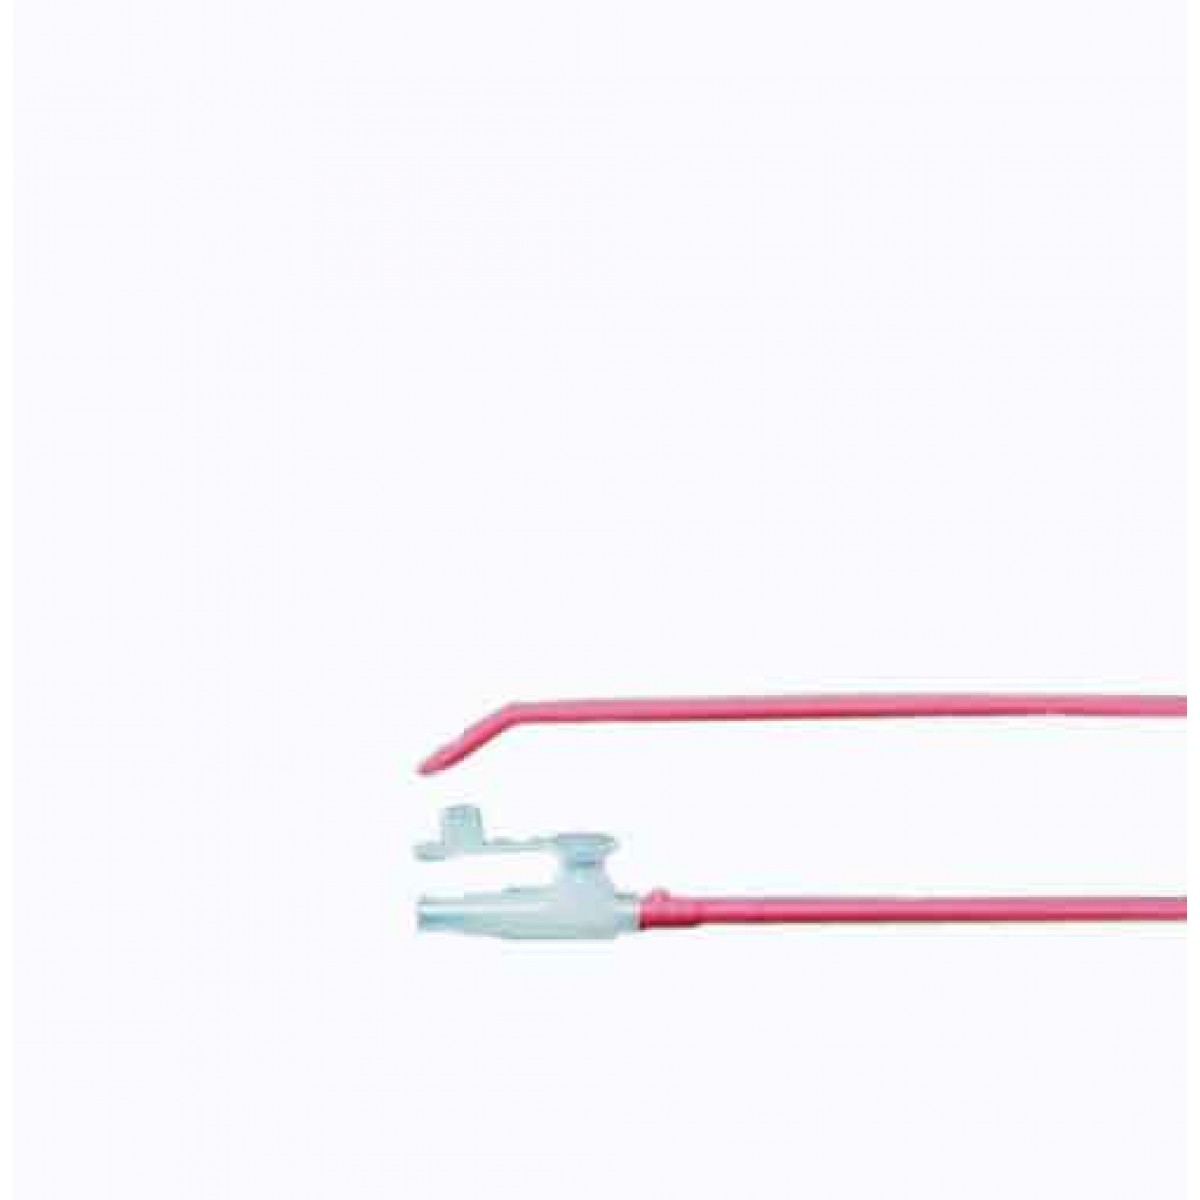 Bard Bronchial Suction Latex Rubber Catheter On Sale With